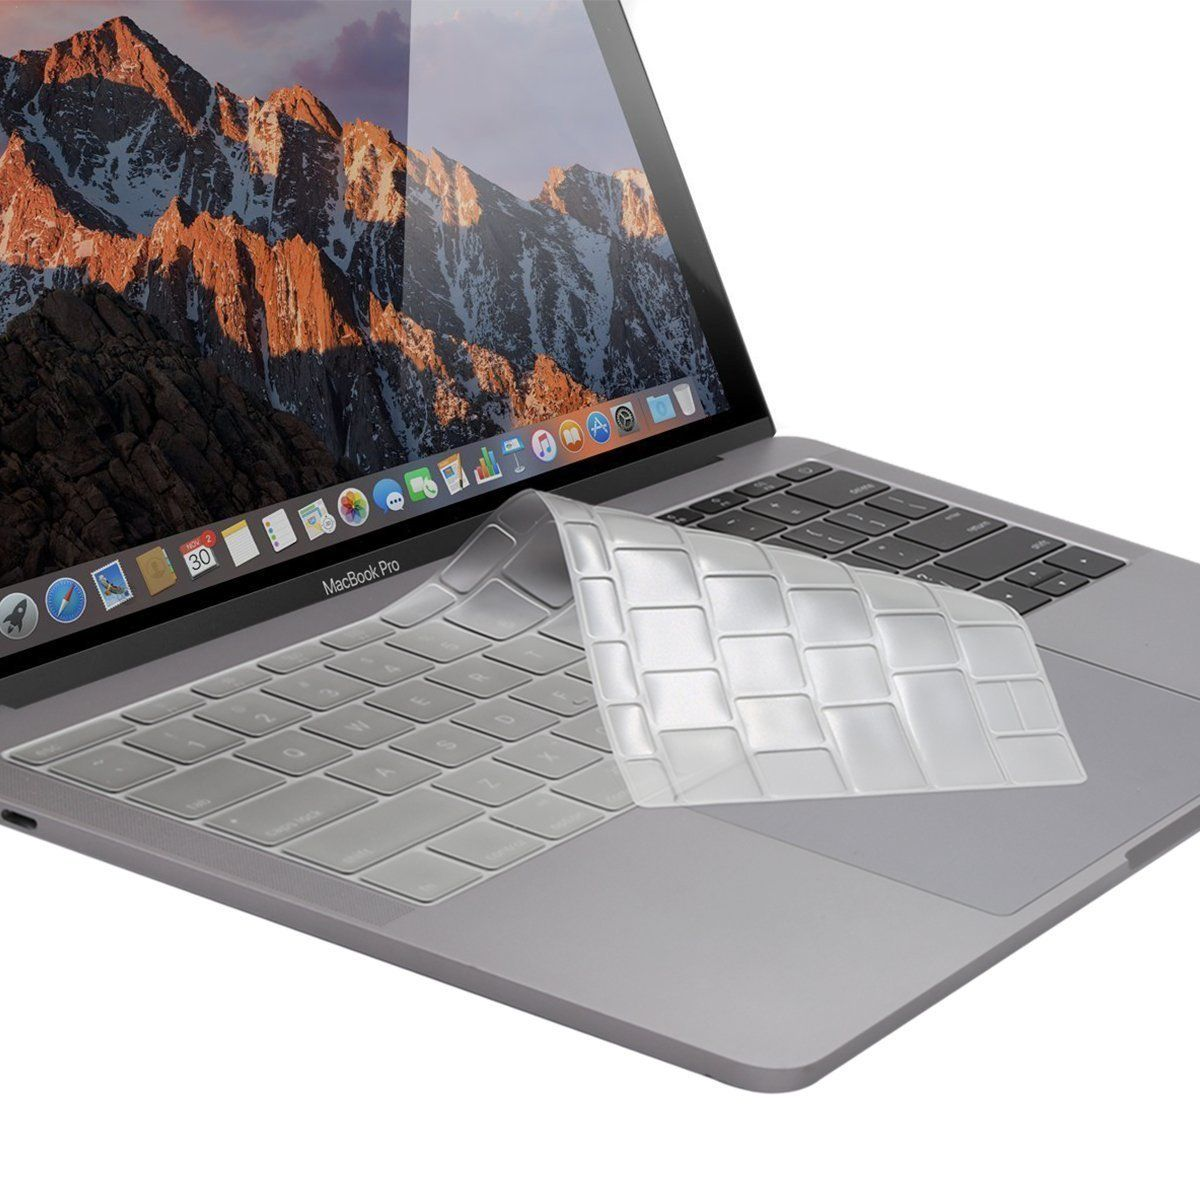 uk availability 17a1c 76d80 Keyboard Protector for MacBook Pro without Touch Bar - Thunderbolt (USB-C)